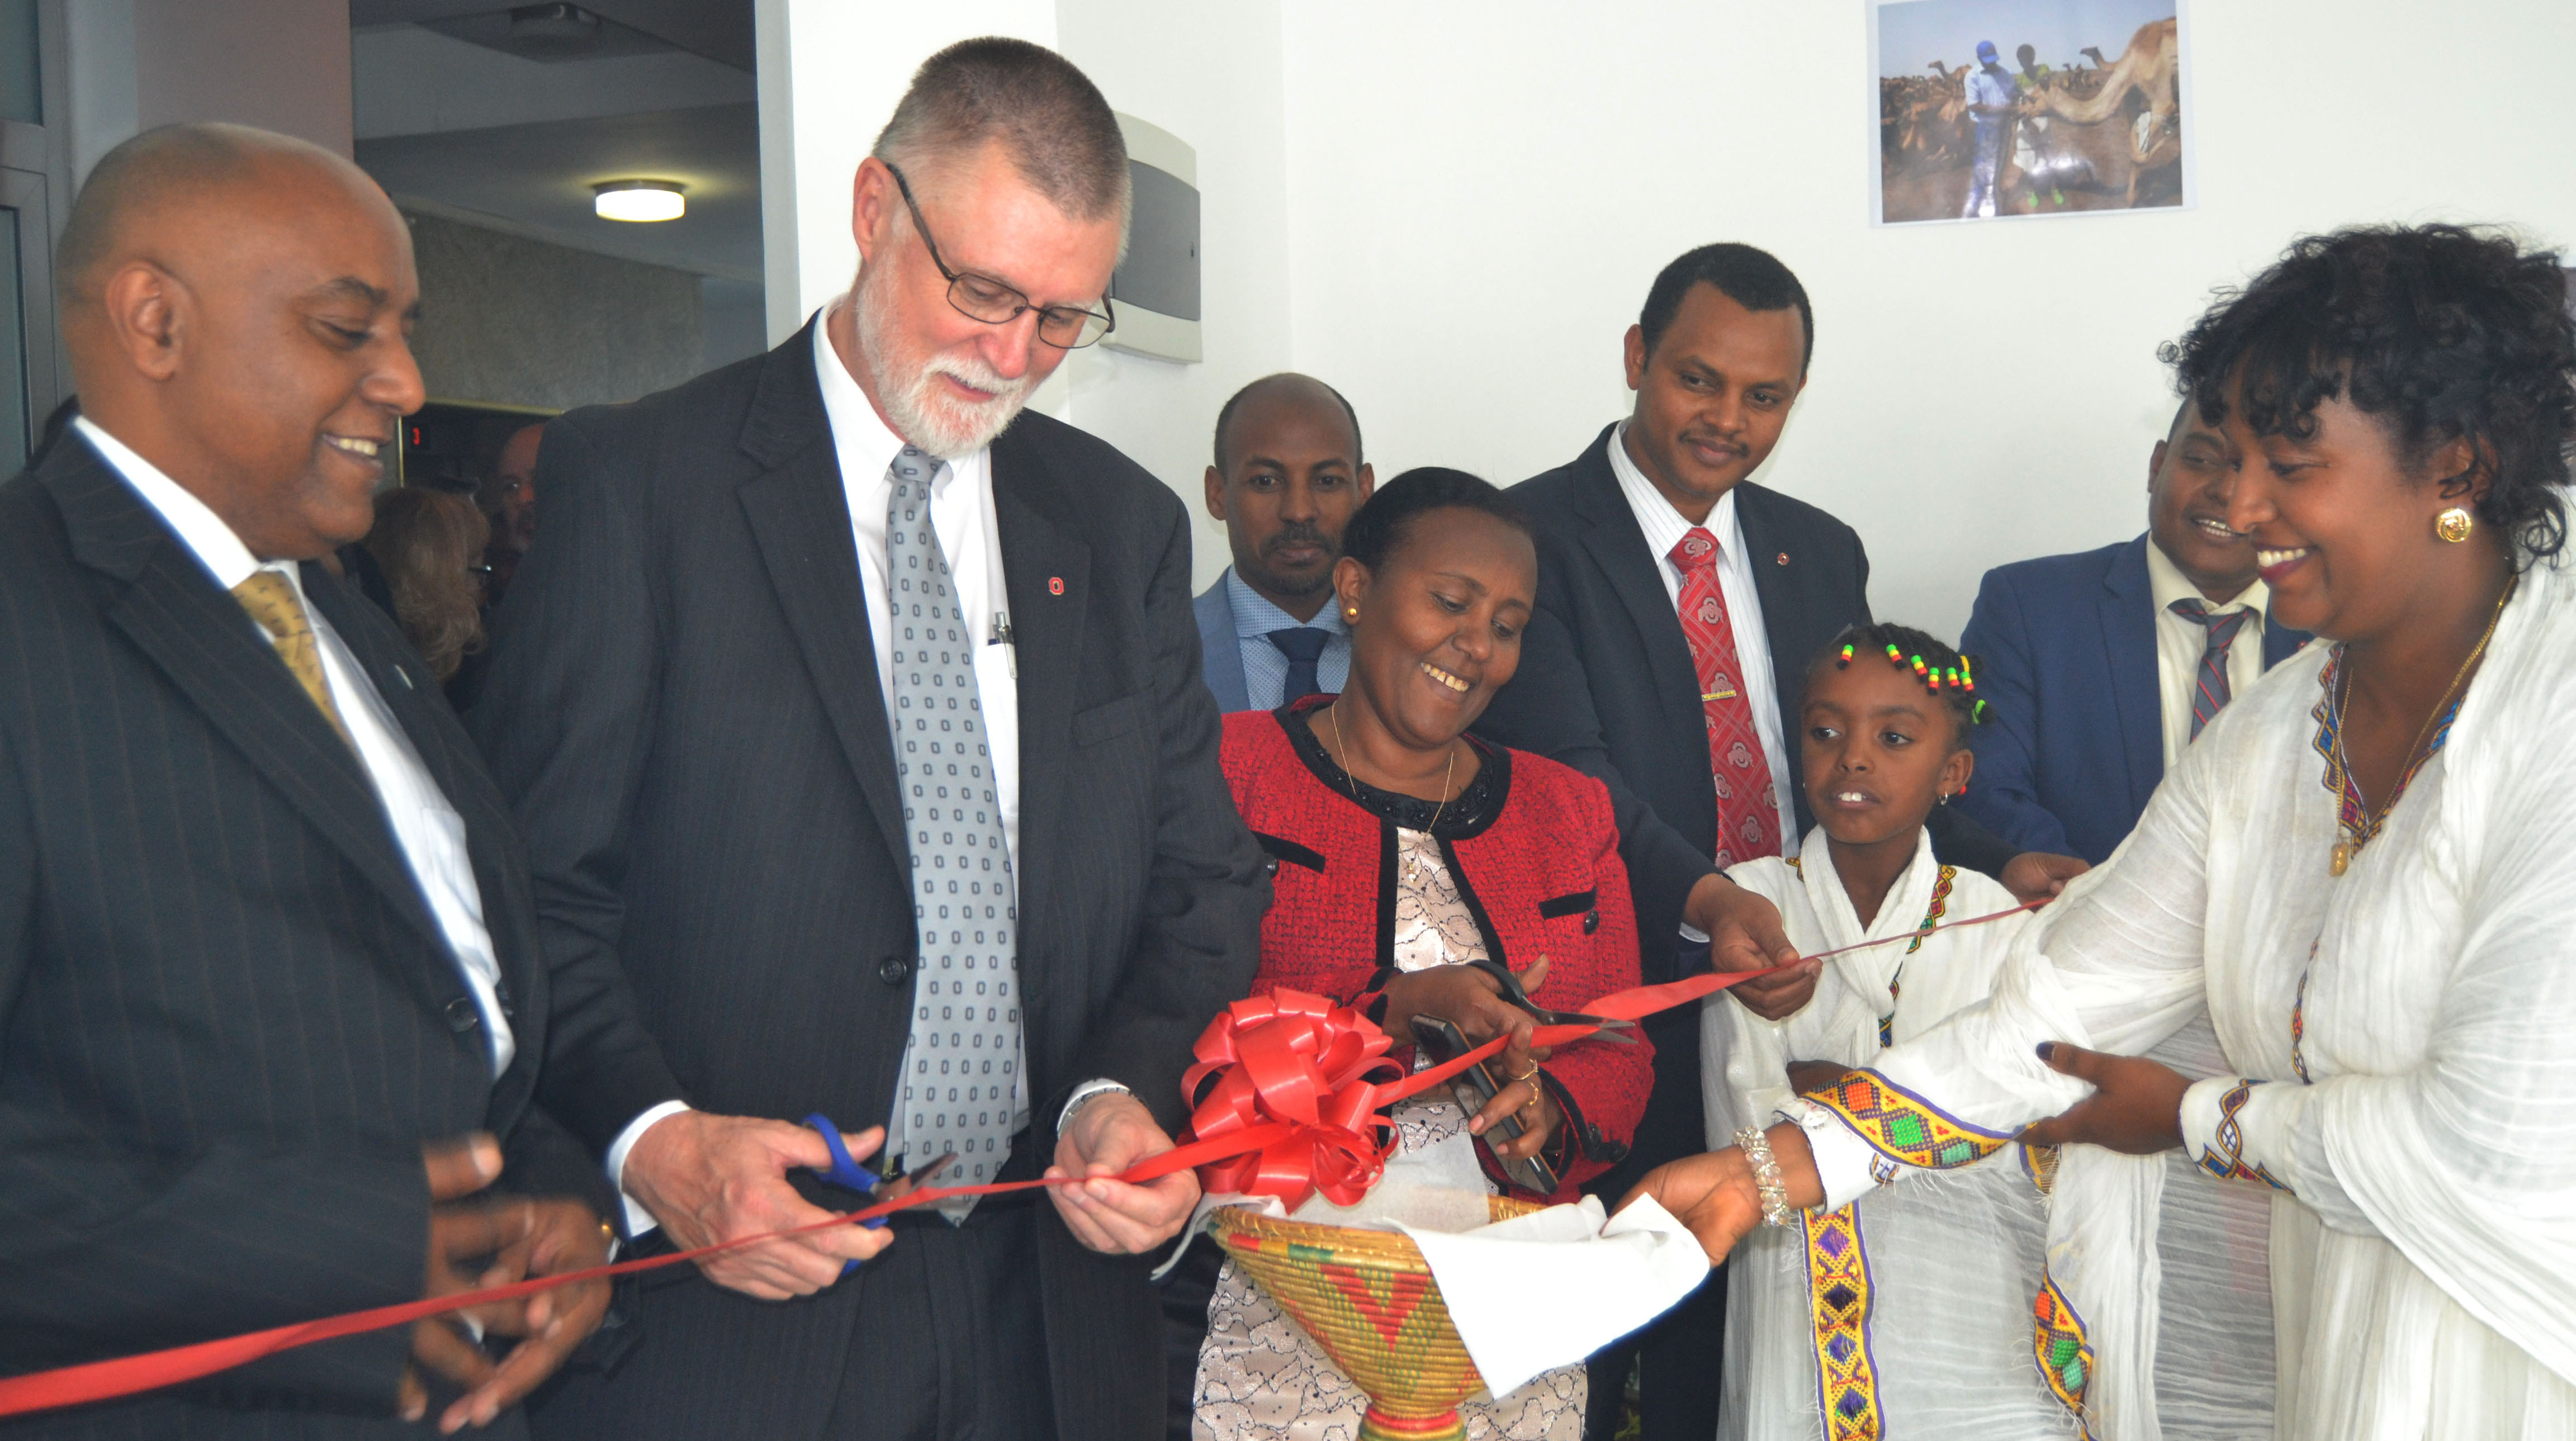 Ribbon cutting at Global One Health office in Addis Ababa